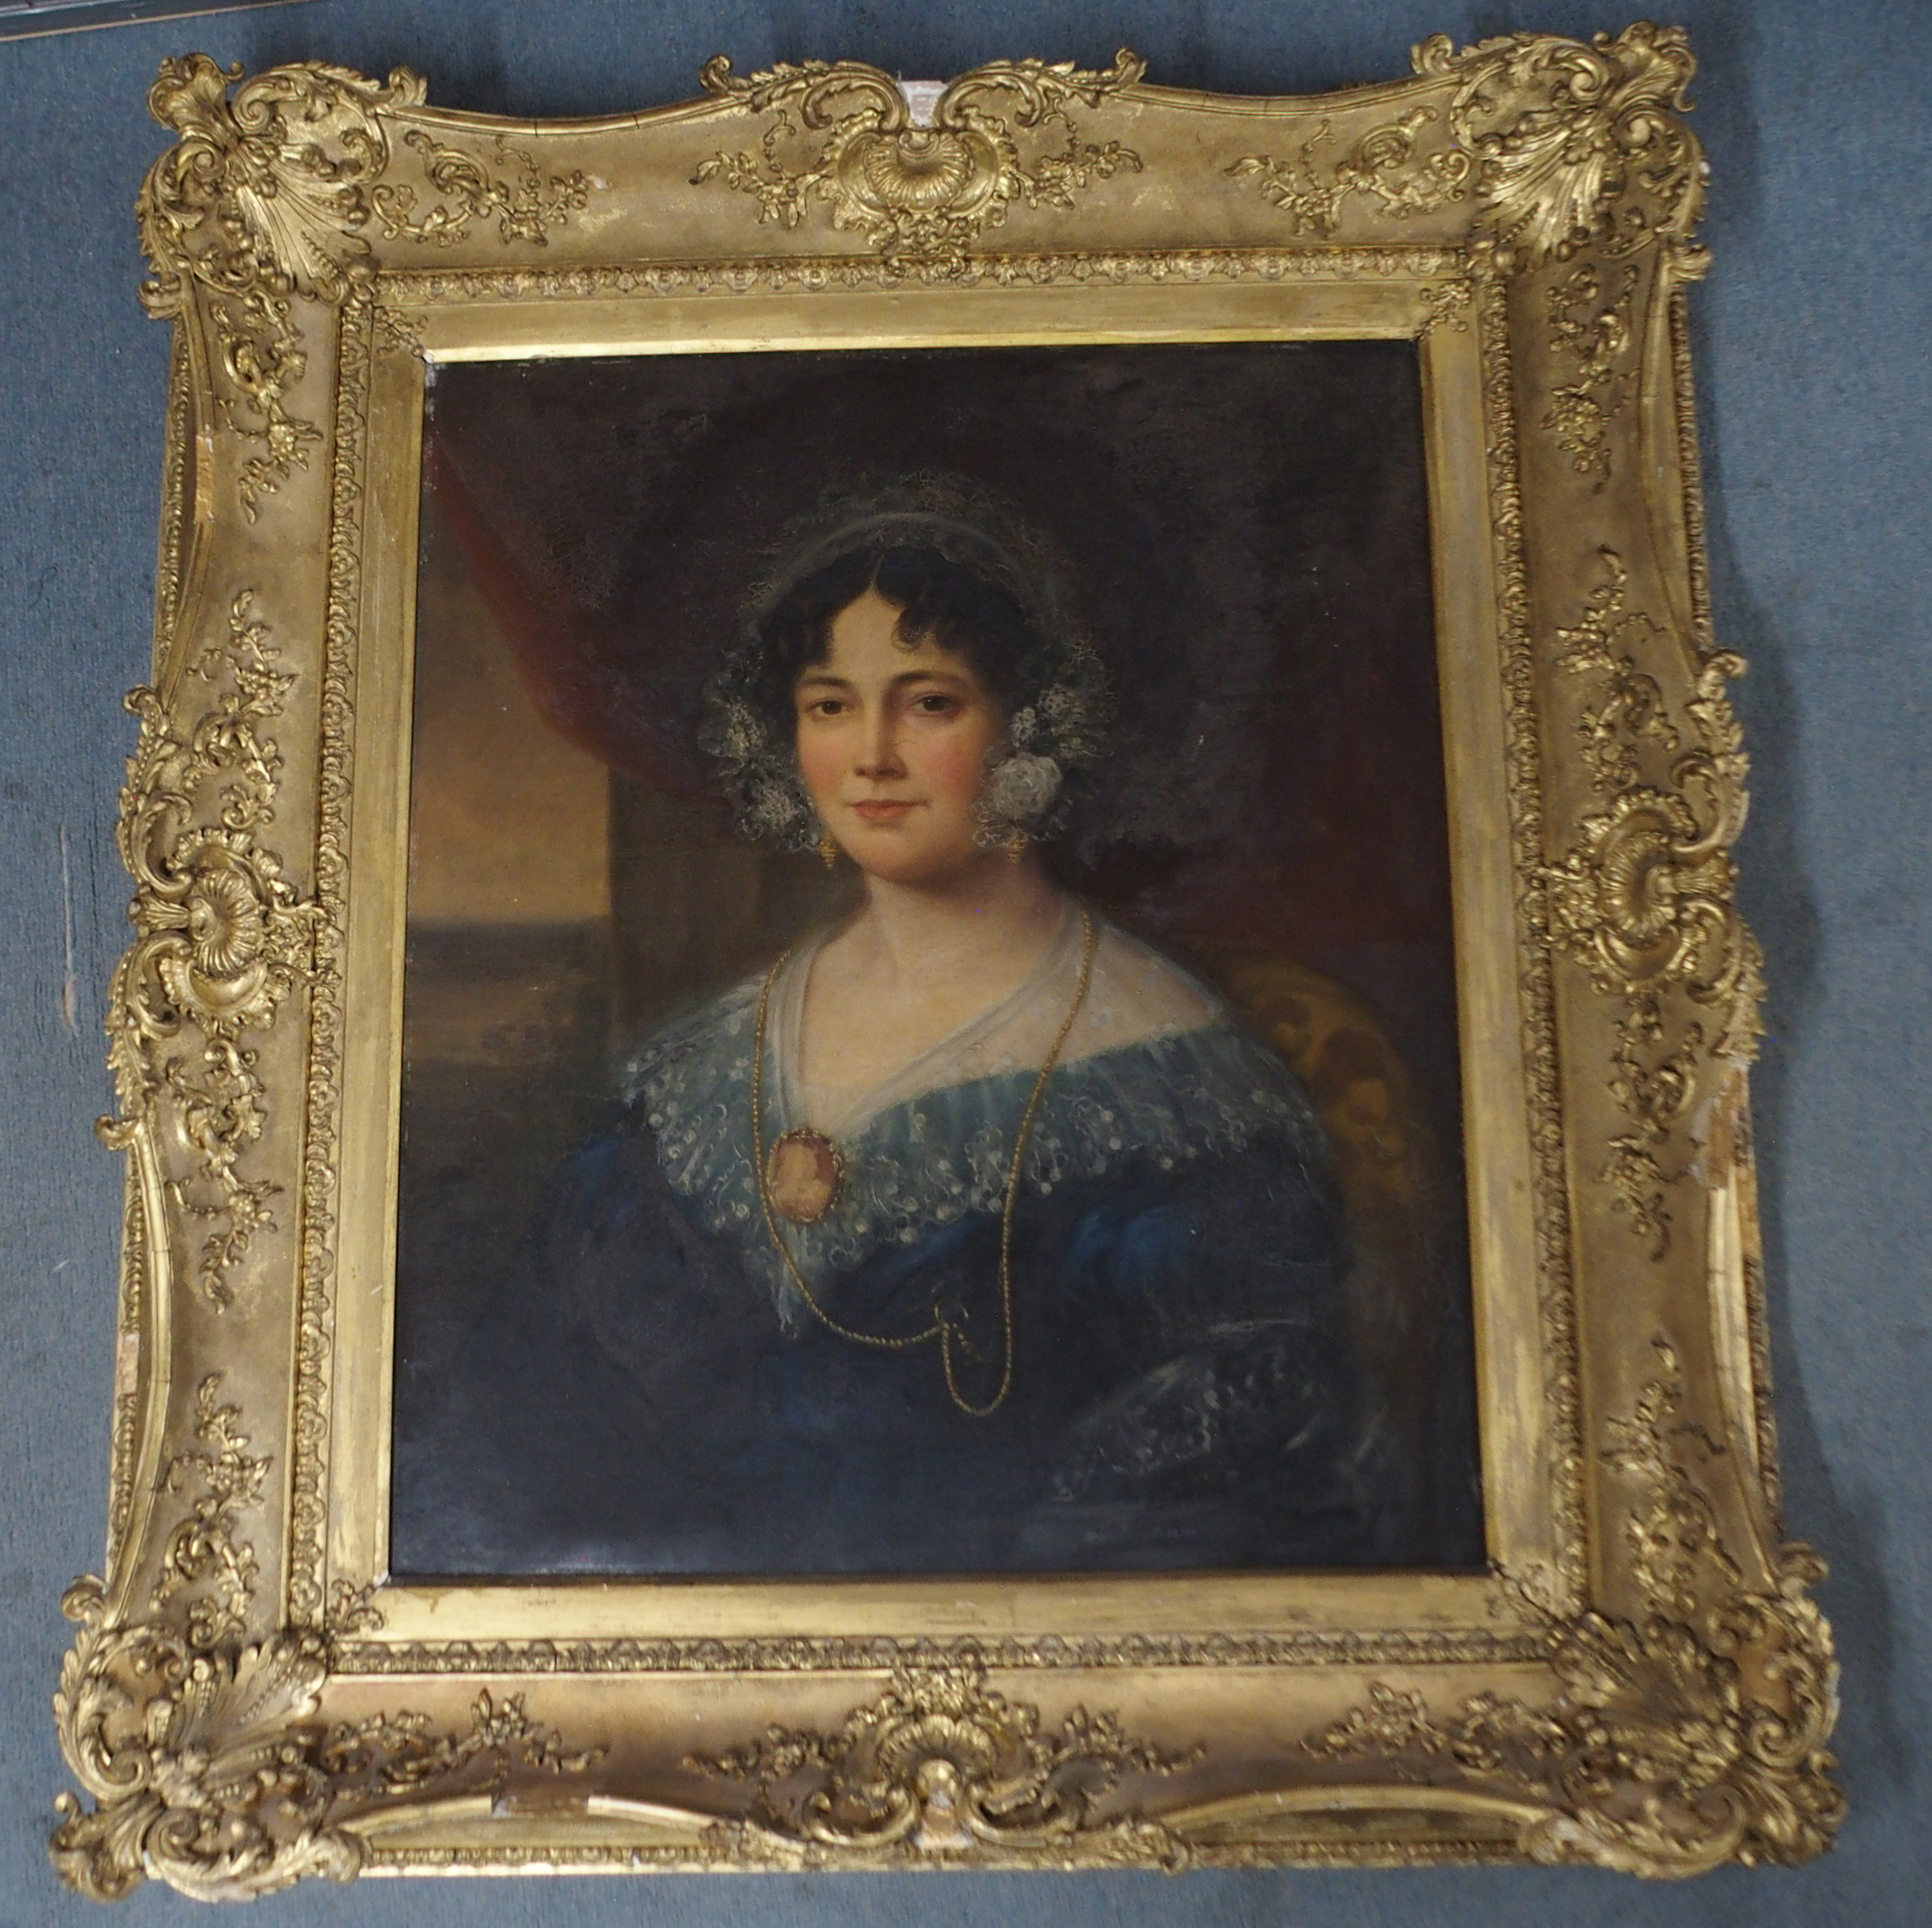 BRITISH SCHOOL (19TH CENTURY) PORTRAIT OF A LADY IN A BLUE DRESS AND LACE CAP Oil on canvas, 76 x - Image 2 of 5